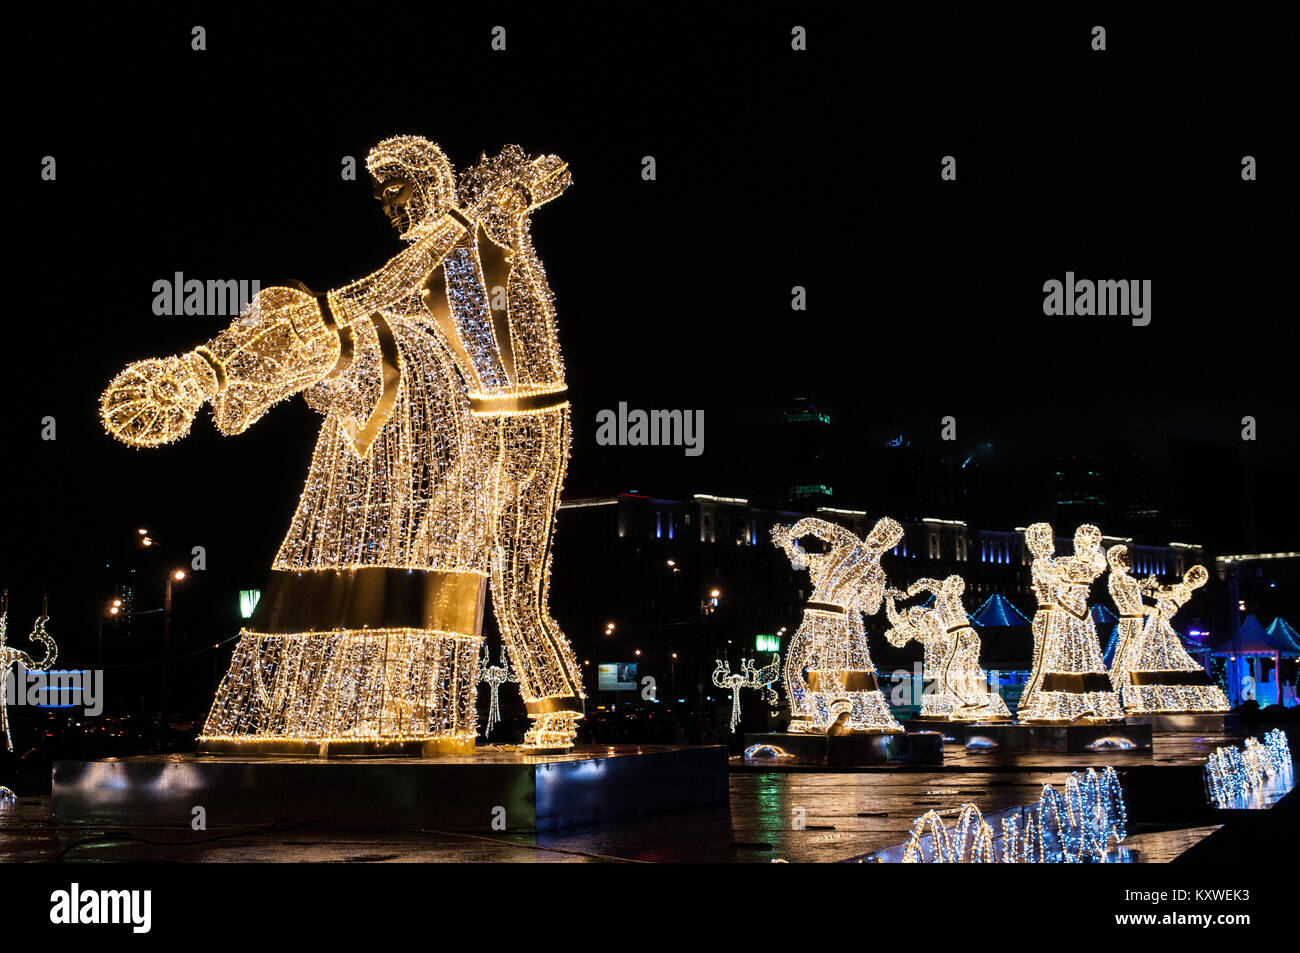 Giant figures of dancers erected for the Festival Trip to Christmas 2017-2018, Moscow, Russia - Stock Image